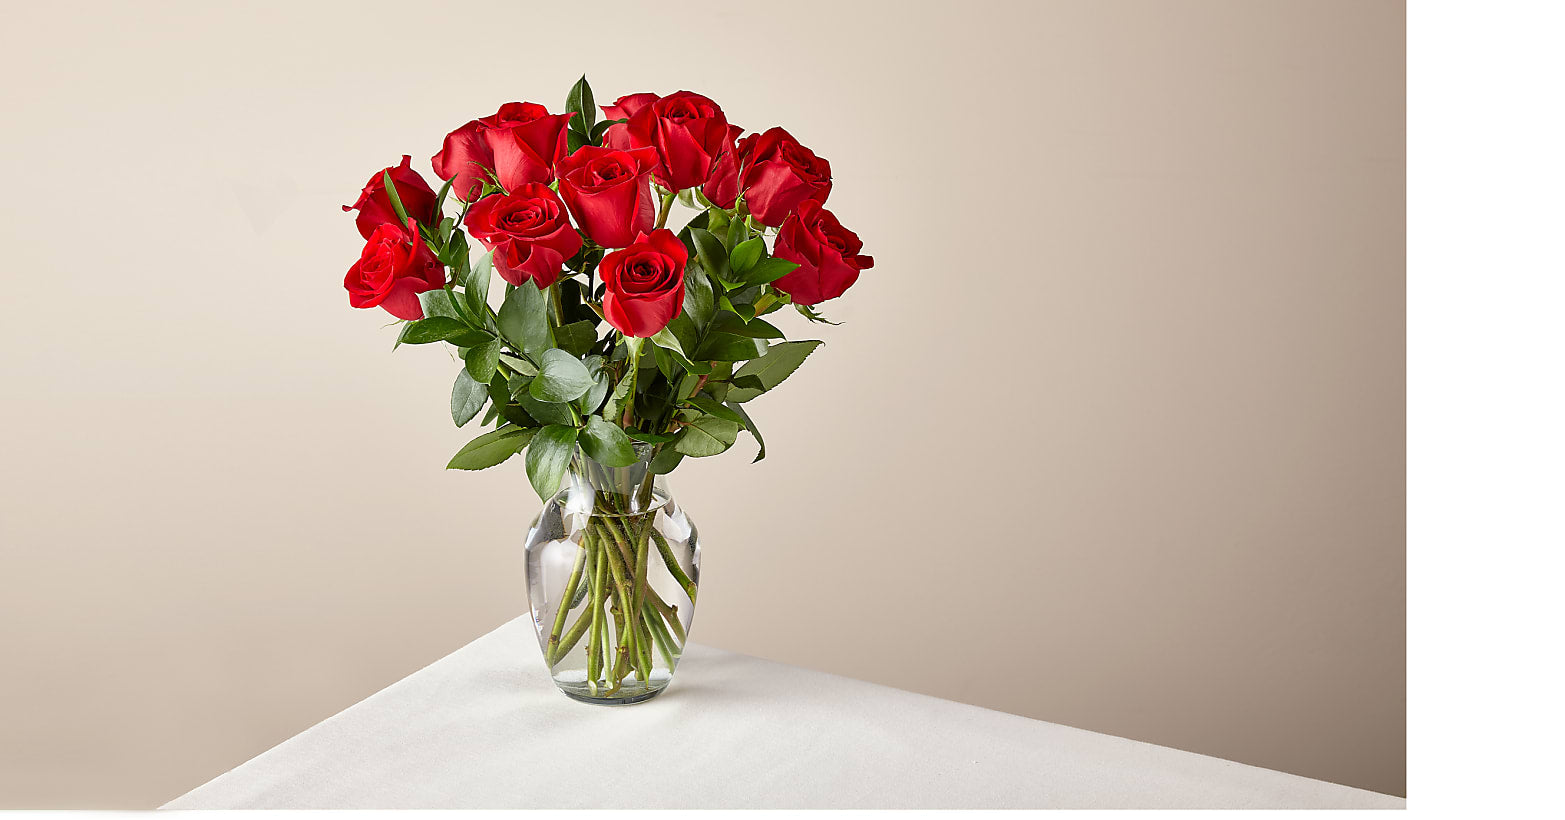 Red Rose Bouquet - Image 1 Of 2